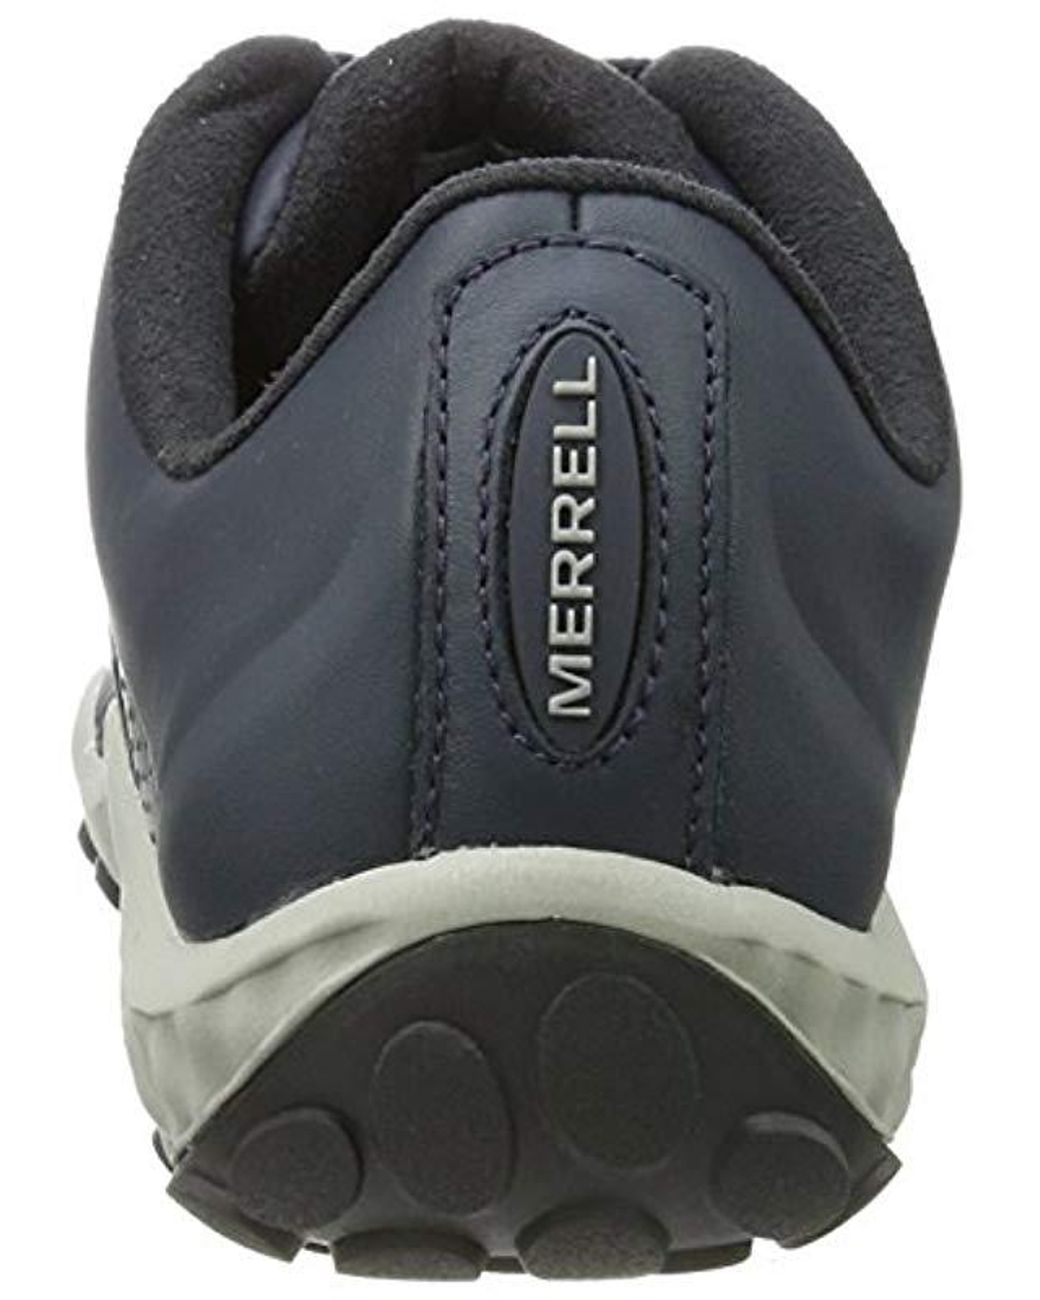 Merrell Versent LTR Perf Trainers Mens Leather Running Sports Fashion J91455